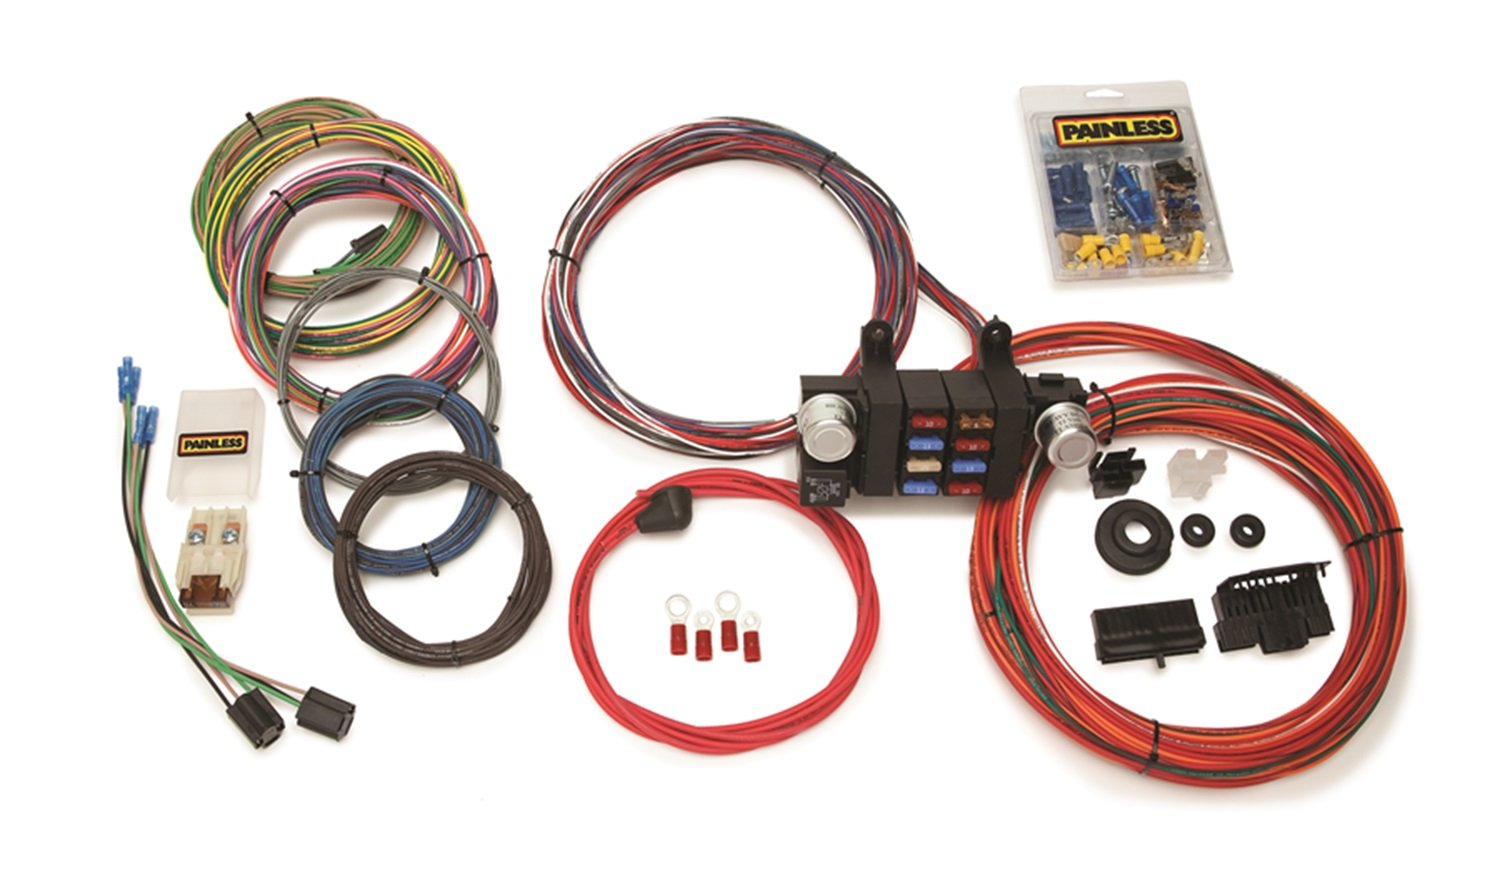 714FypRjpJL._SL1500_ amazon com painless wiring 10308 8 circuit mod t bucket h automotive wiring harness at readyjetset.co